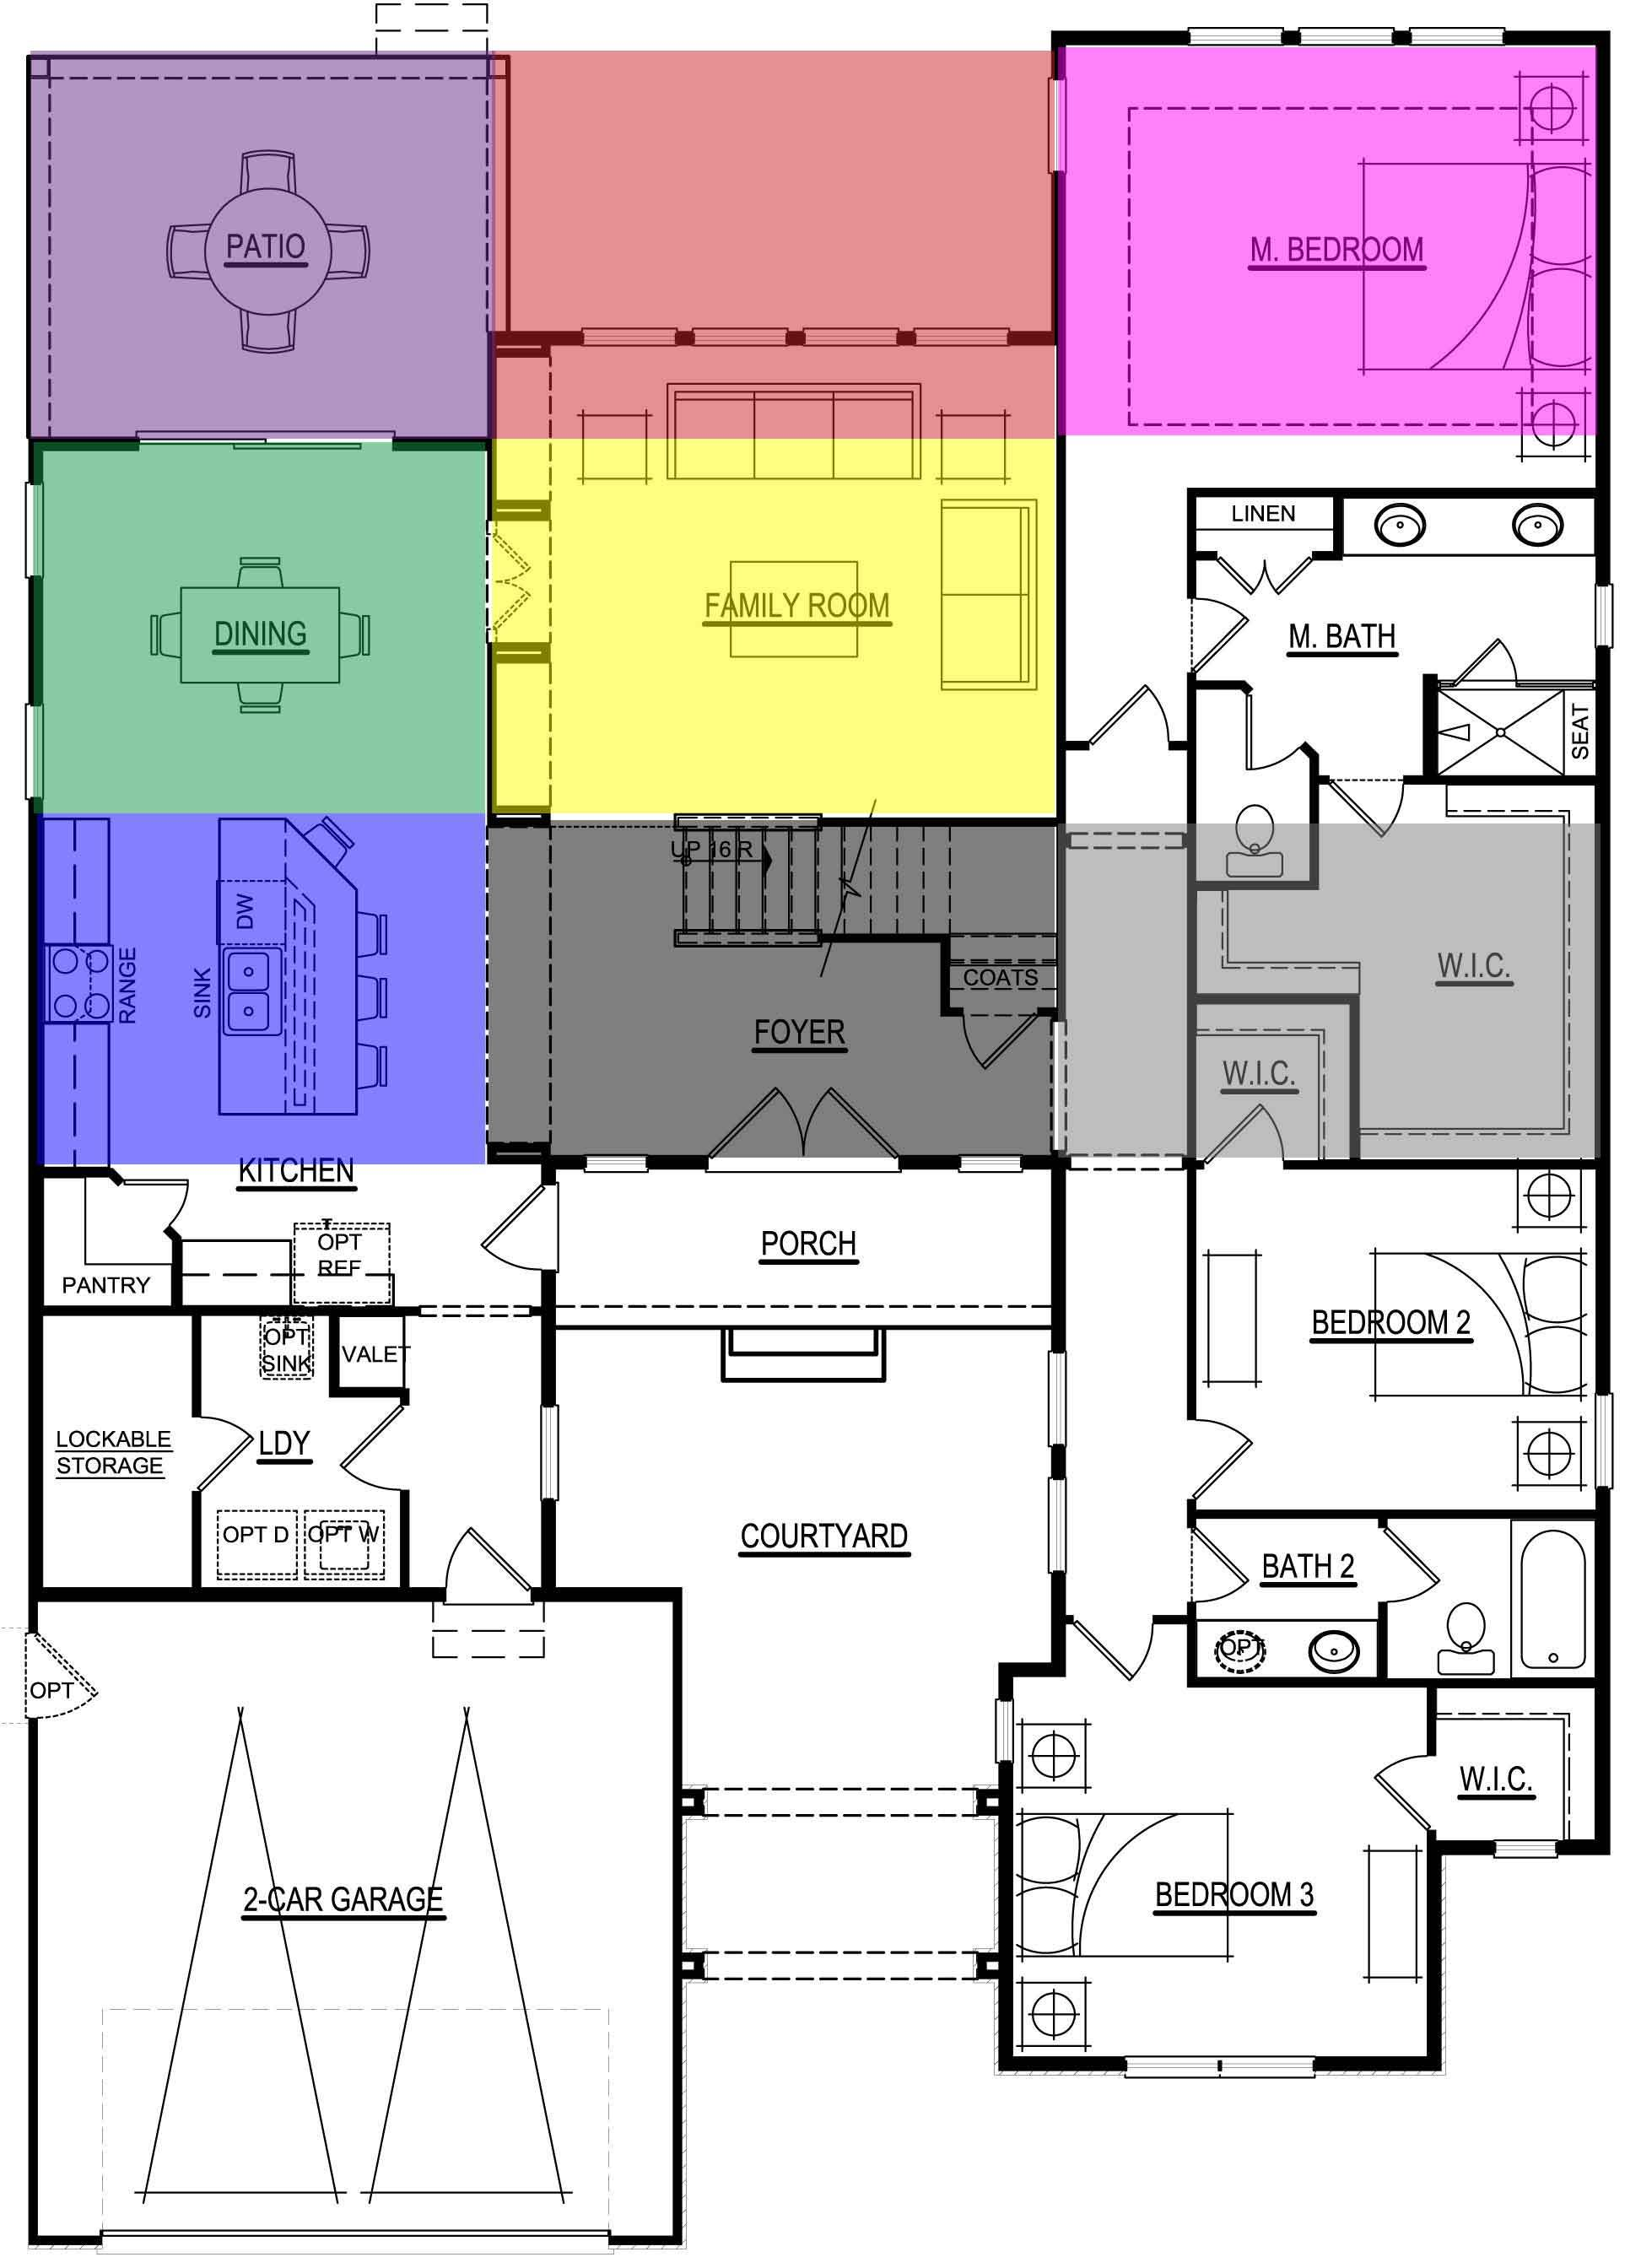 Fenshui The Feng Shui Bagua Overlays Onto The Floor Plan Of A Home With